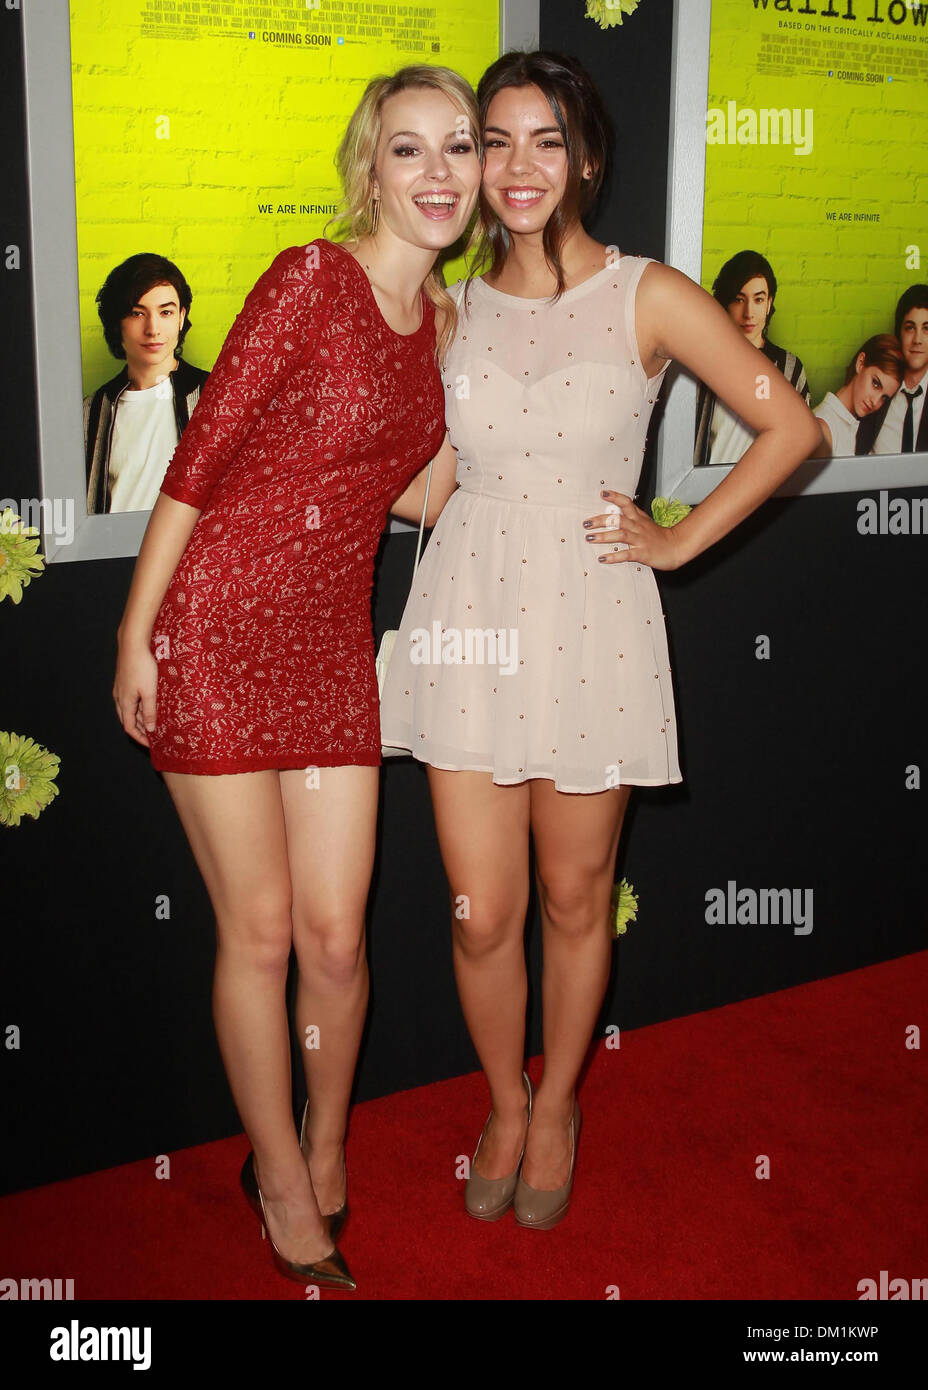 Bridgit Mendler Samantha Boscarino Los Angeles Premiere Of The Perks Of Being A Wallflower At Arclight Cinerama Dome